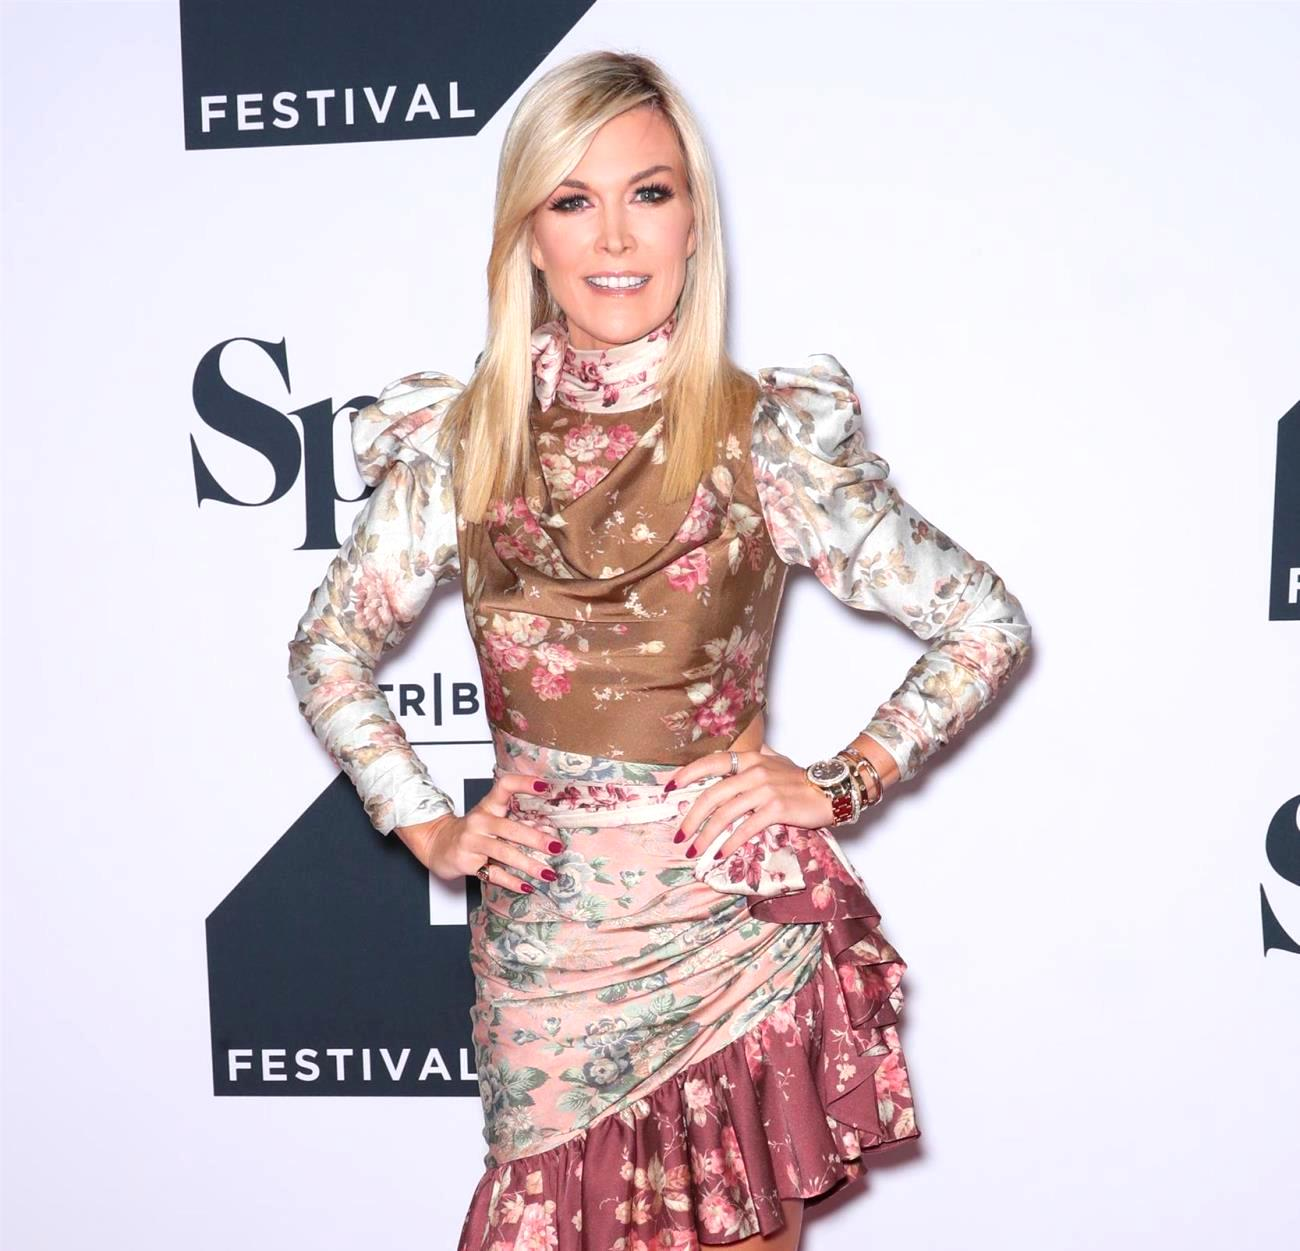 Is Tinsley Mortimer Trying to Save Her Job on RHONY by Finding a Big-Name Co-Star?